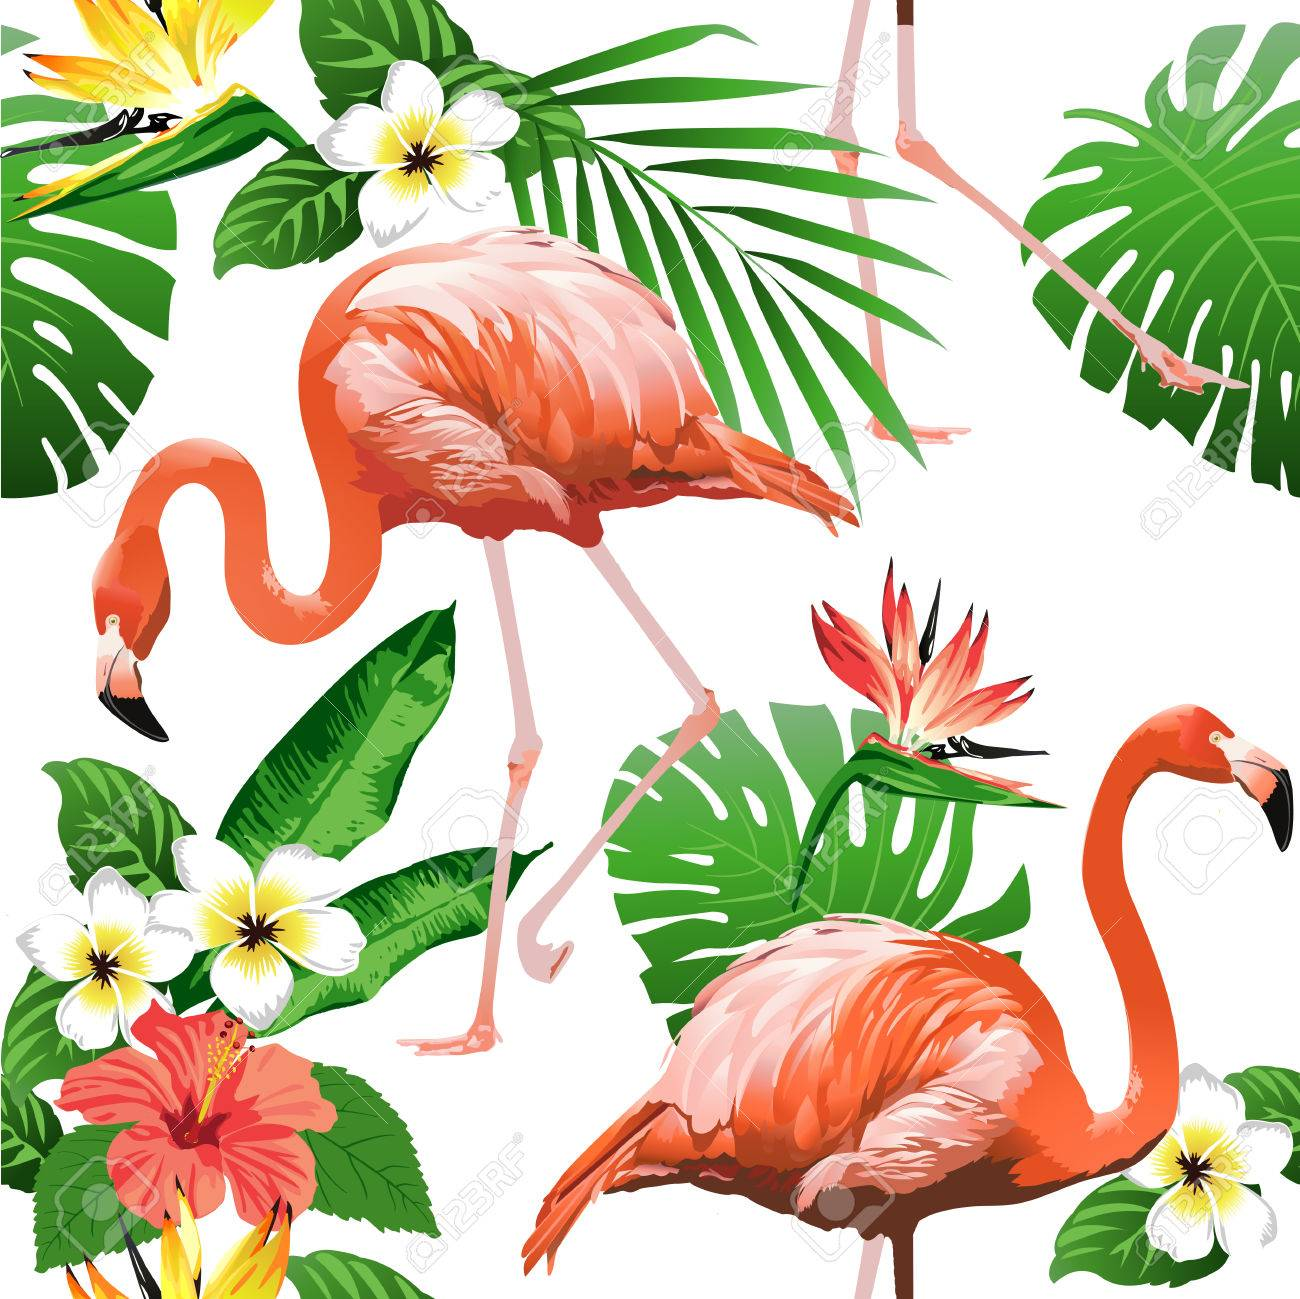 Flamingo Bird and Tropical Flowers Background - Seamless pattern vector - 81374671